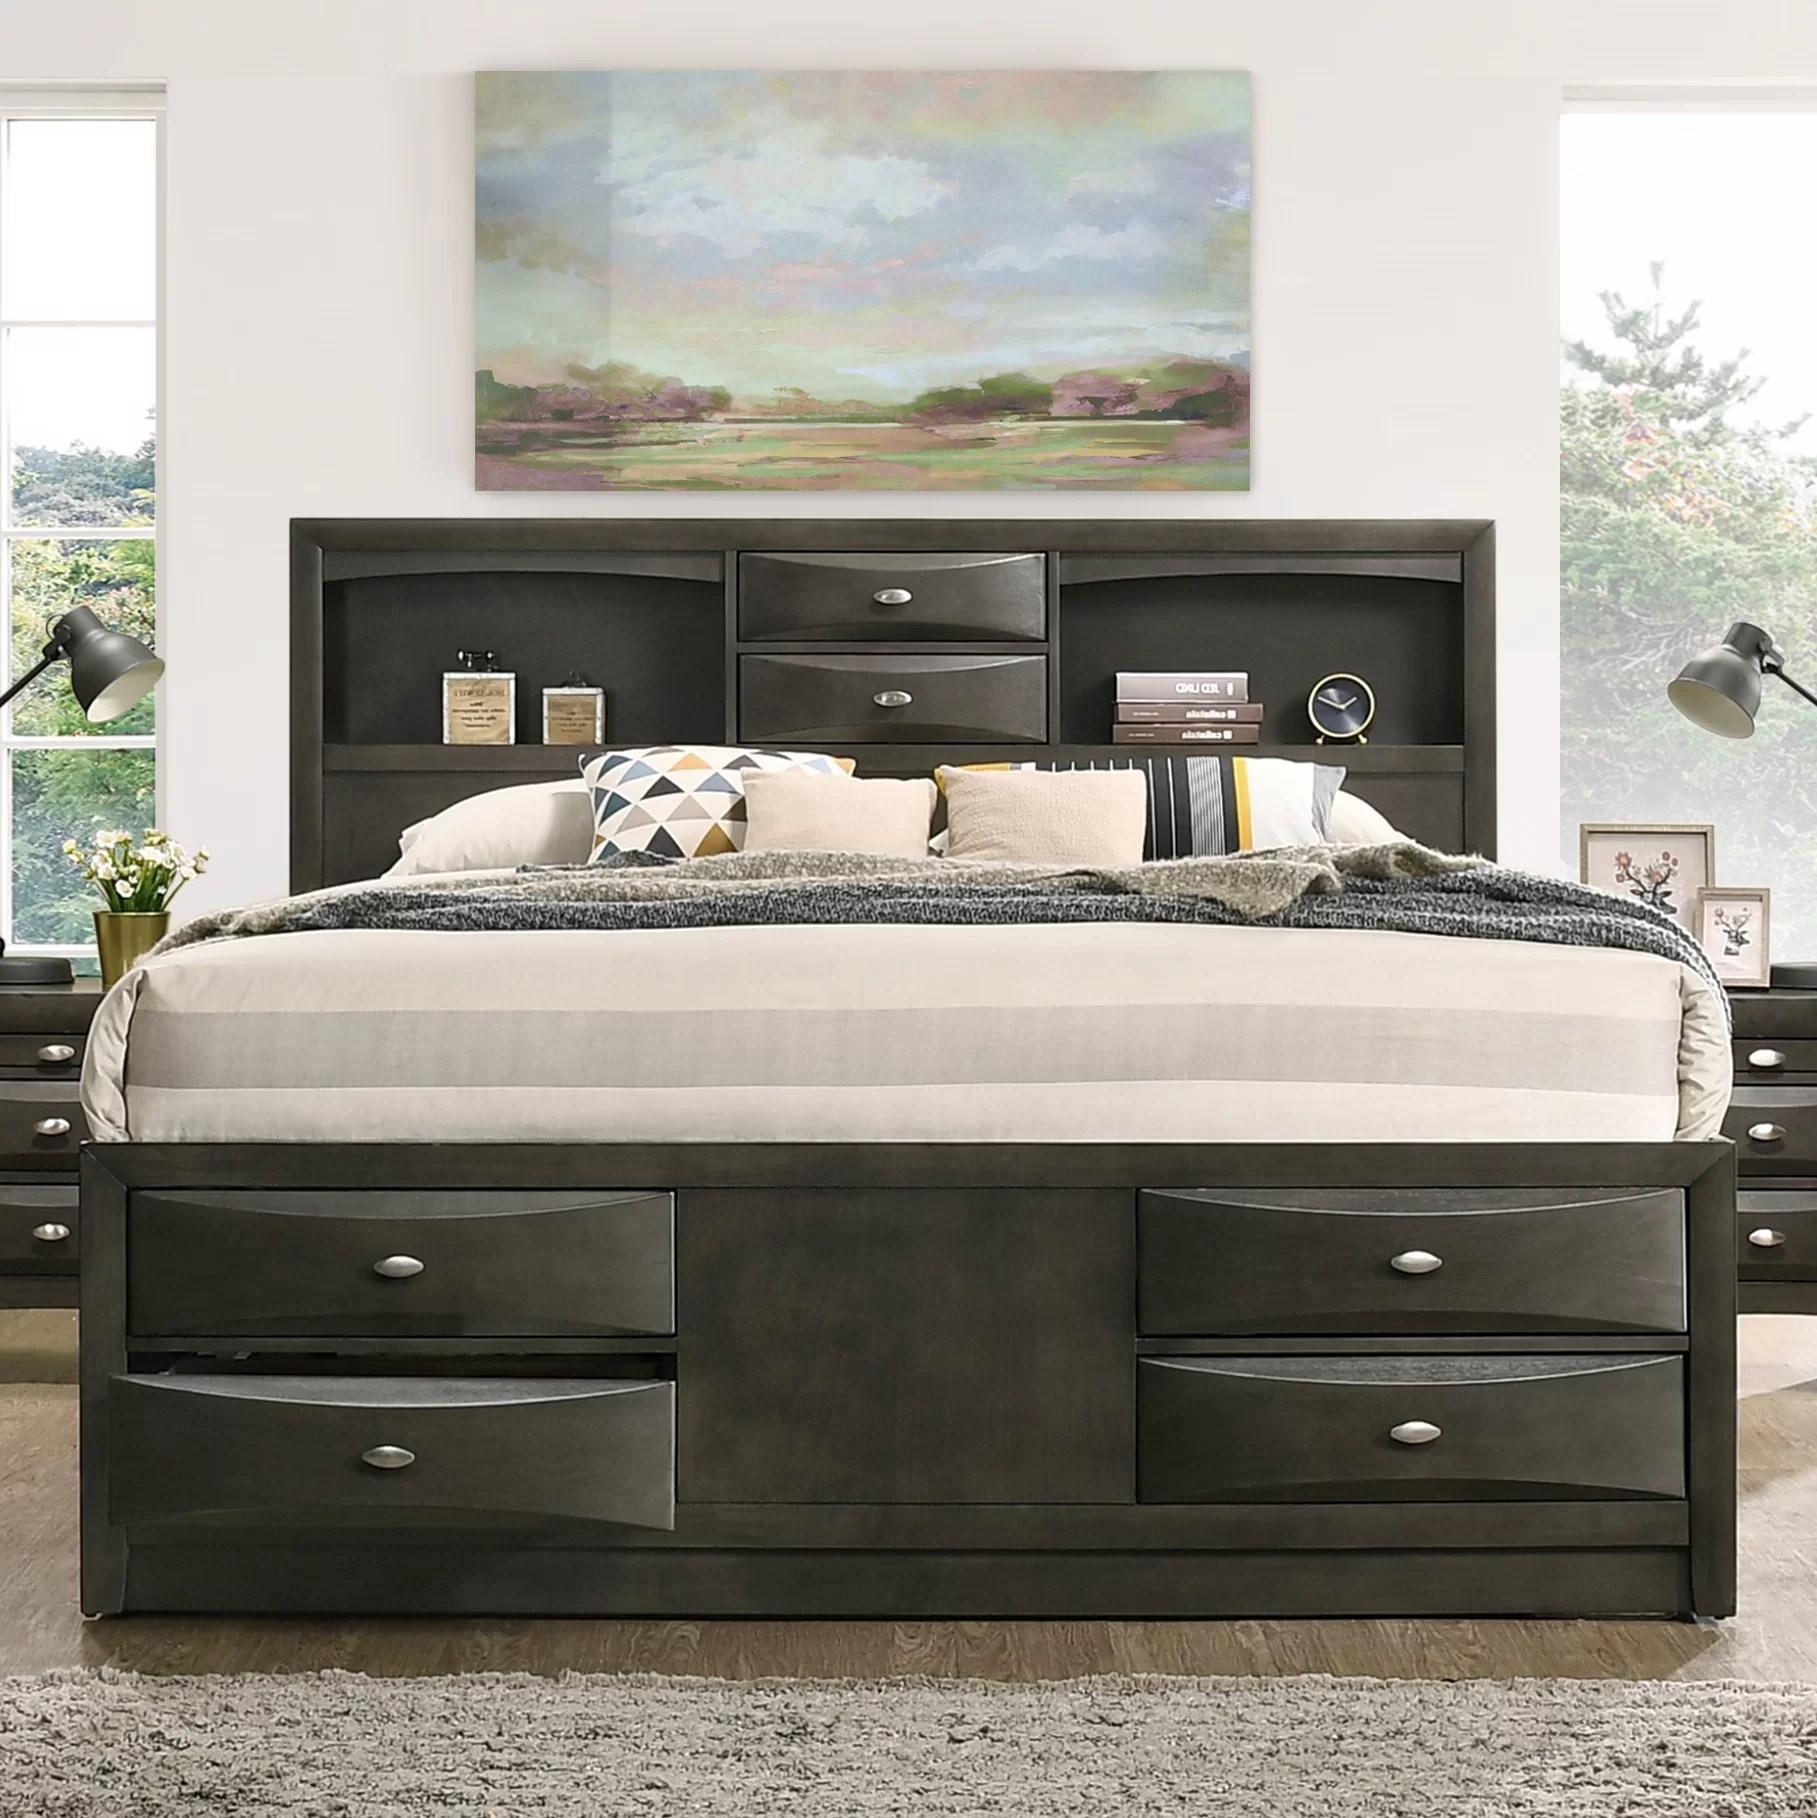 Bed Headboard Carle Bookcase Headboard Platform Bed